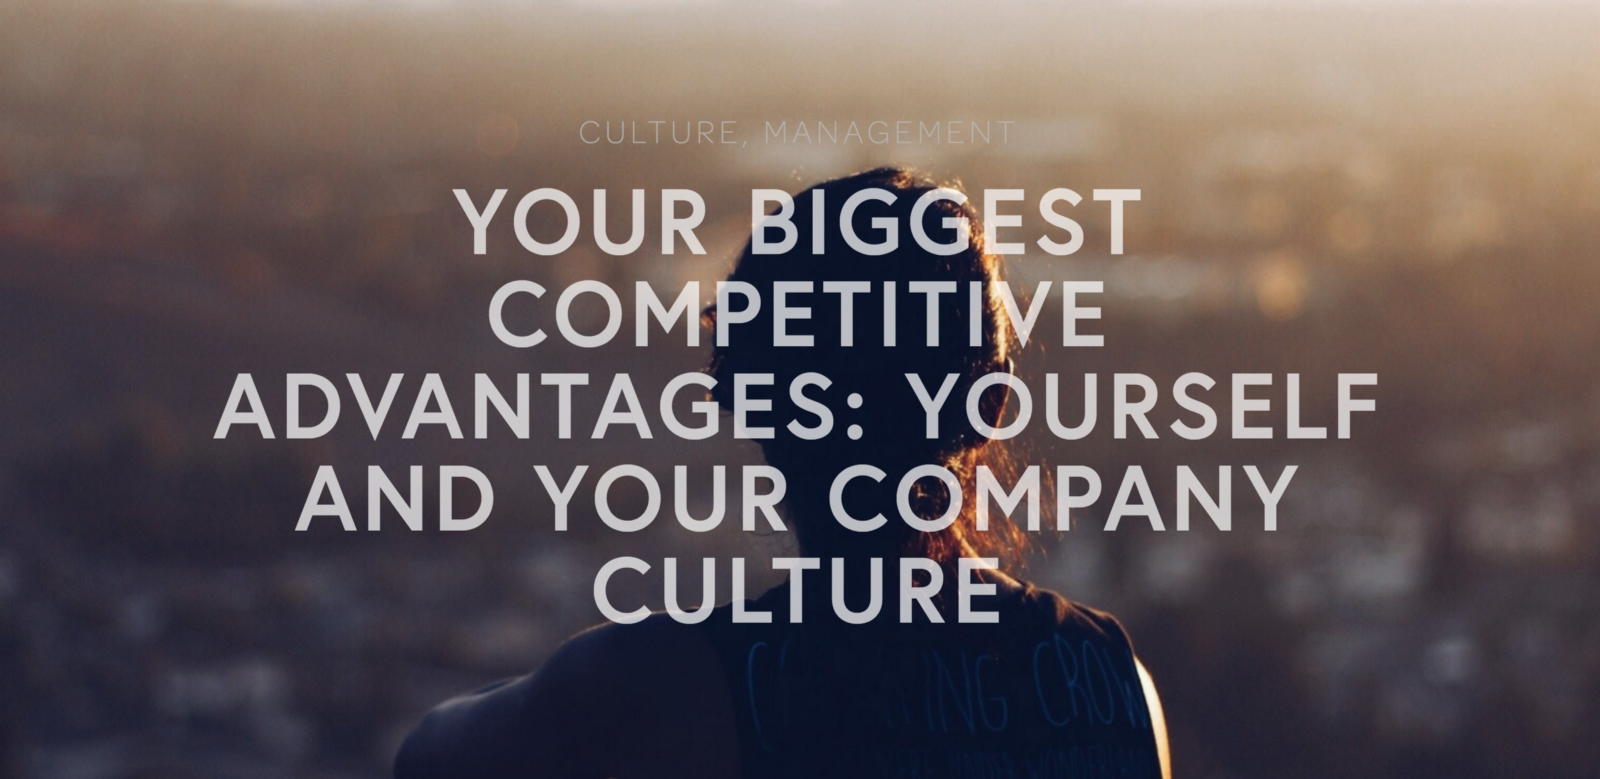 competitive advantage m68qyf9a